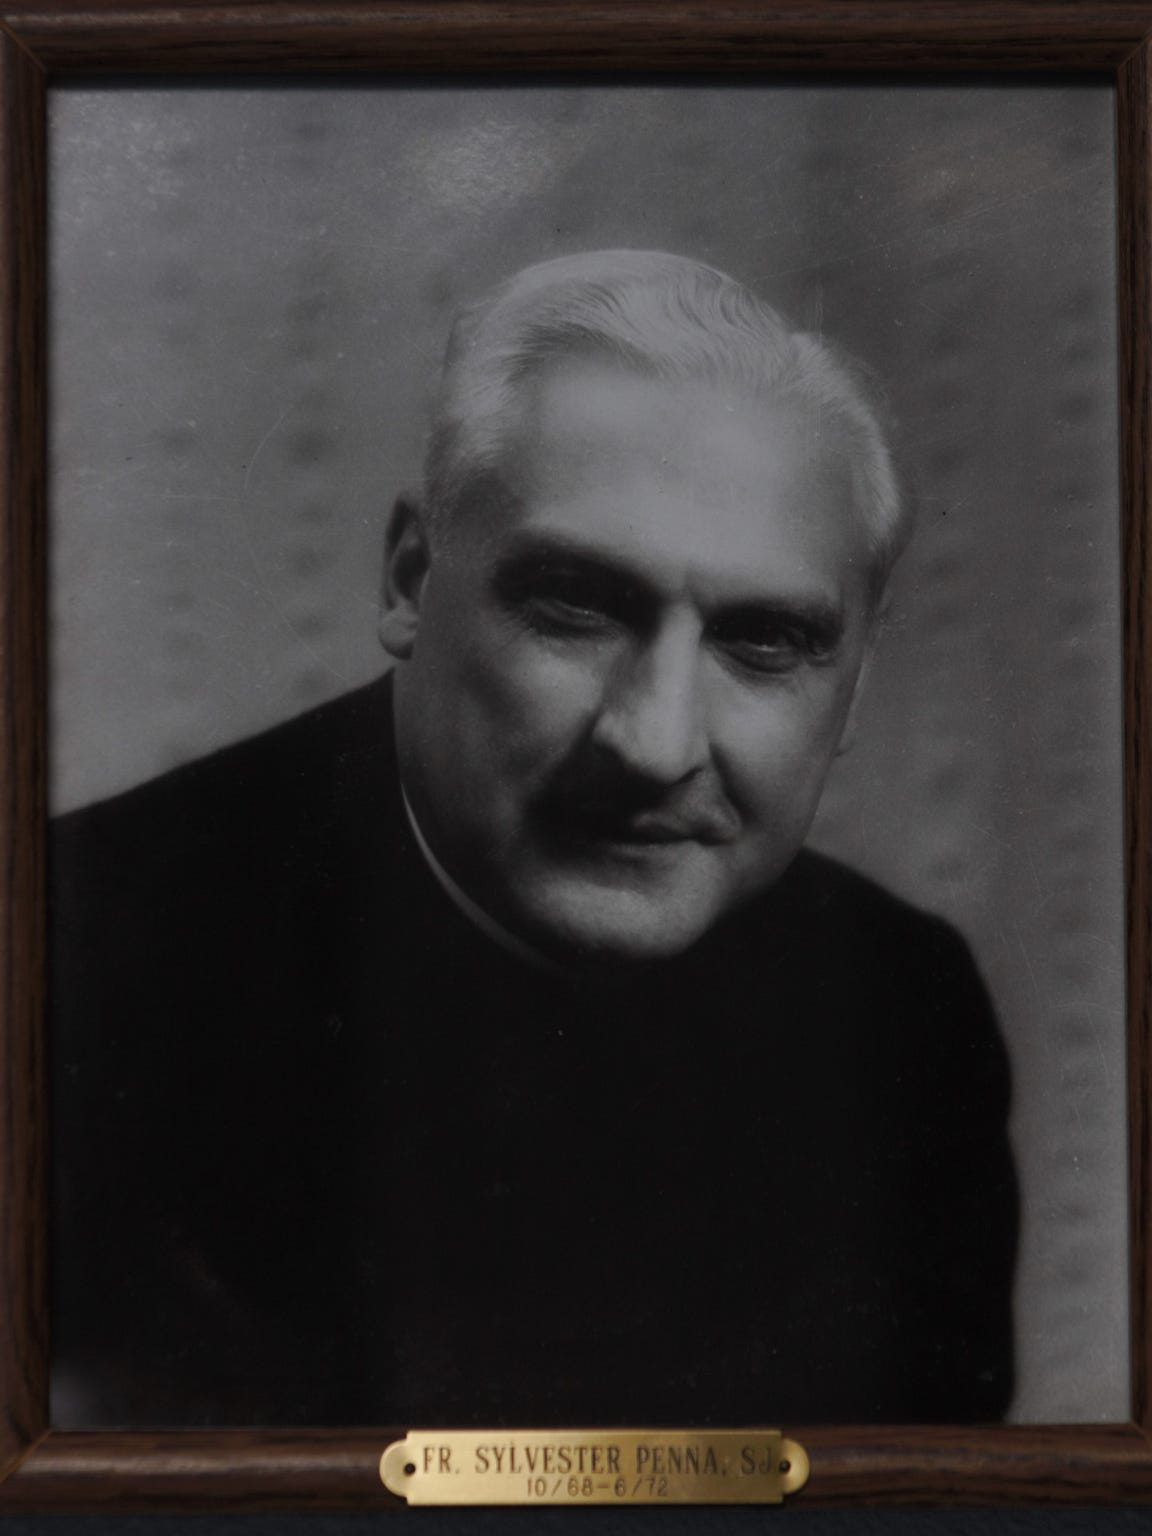 Father Sylvester Penna's portrait hangs among the other